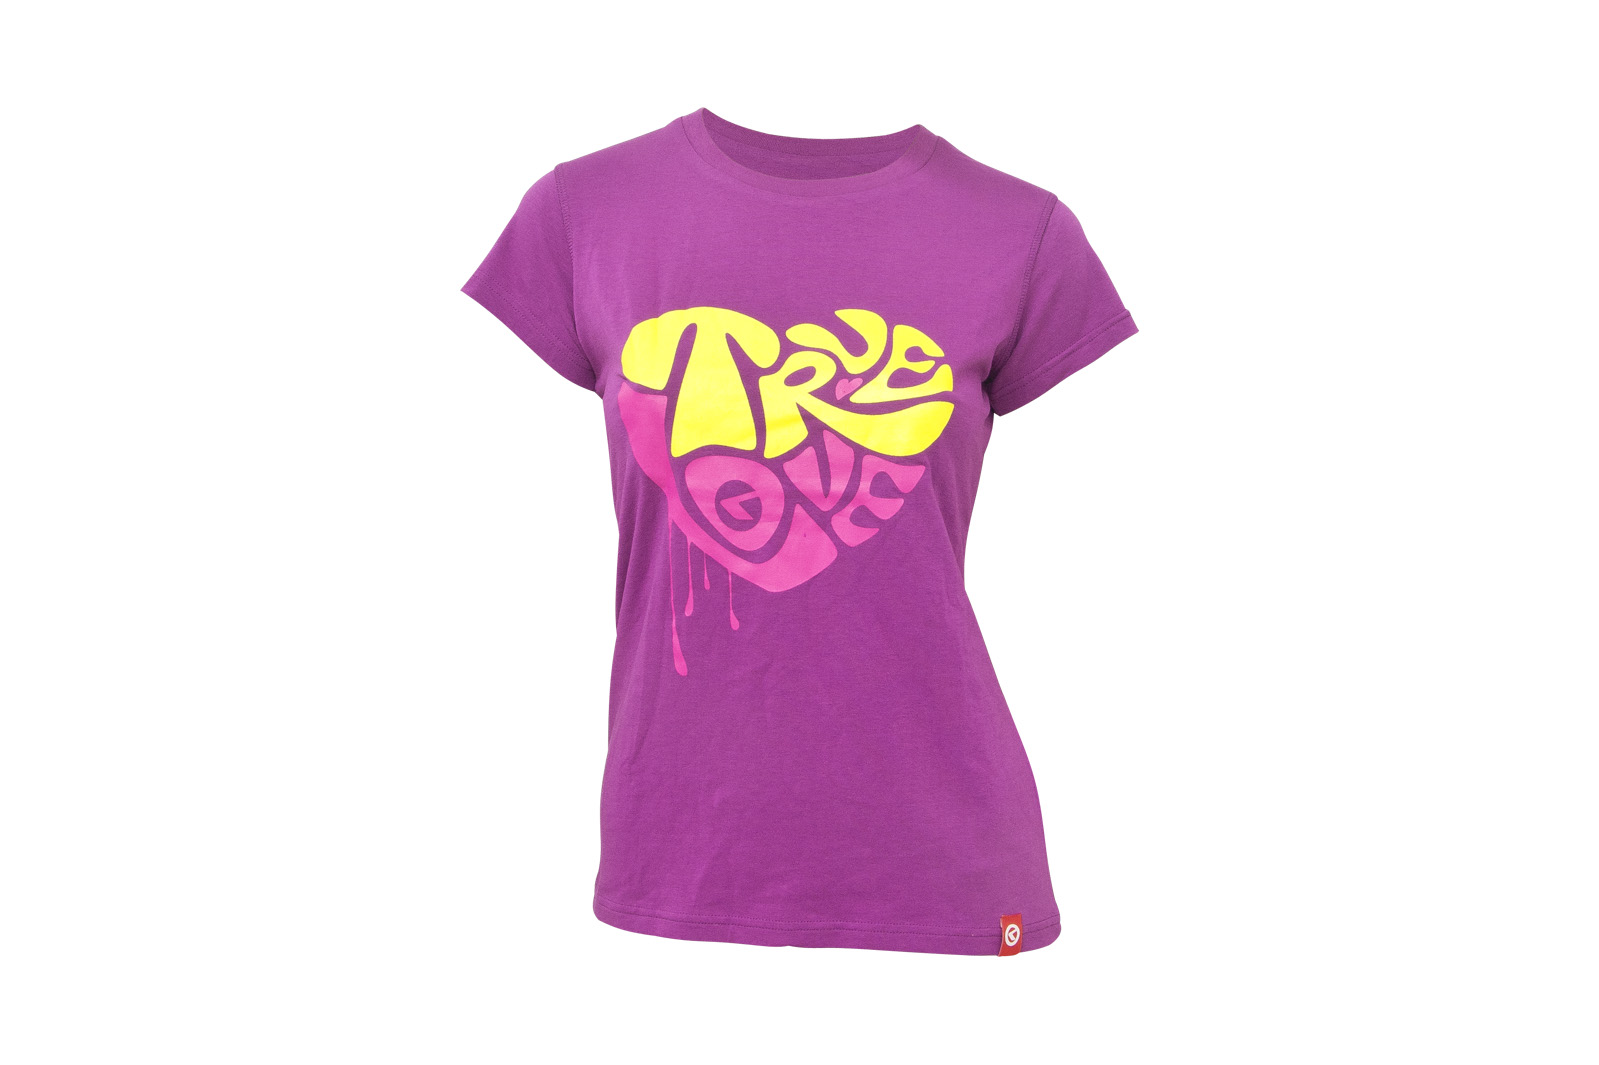 T-Shirt KELLYS WOMEN´S TRUE LOVE kurzarm Purple - L - Mega Handelsgesellschaft